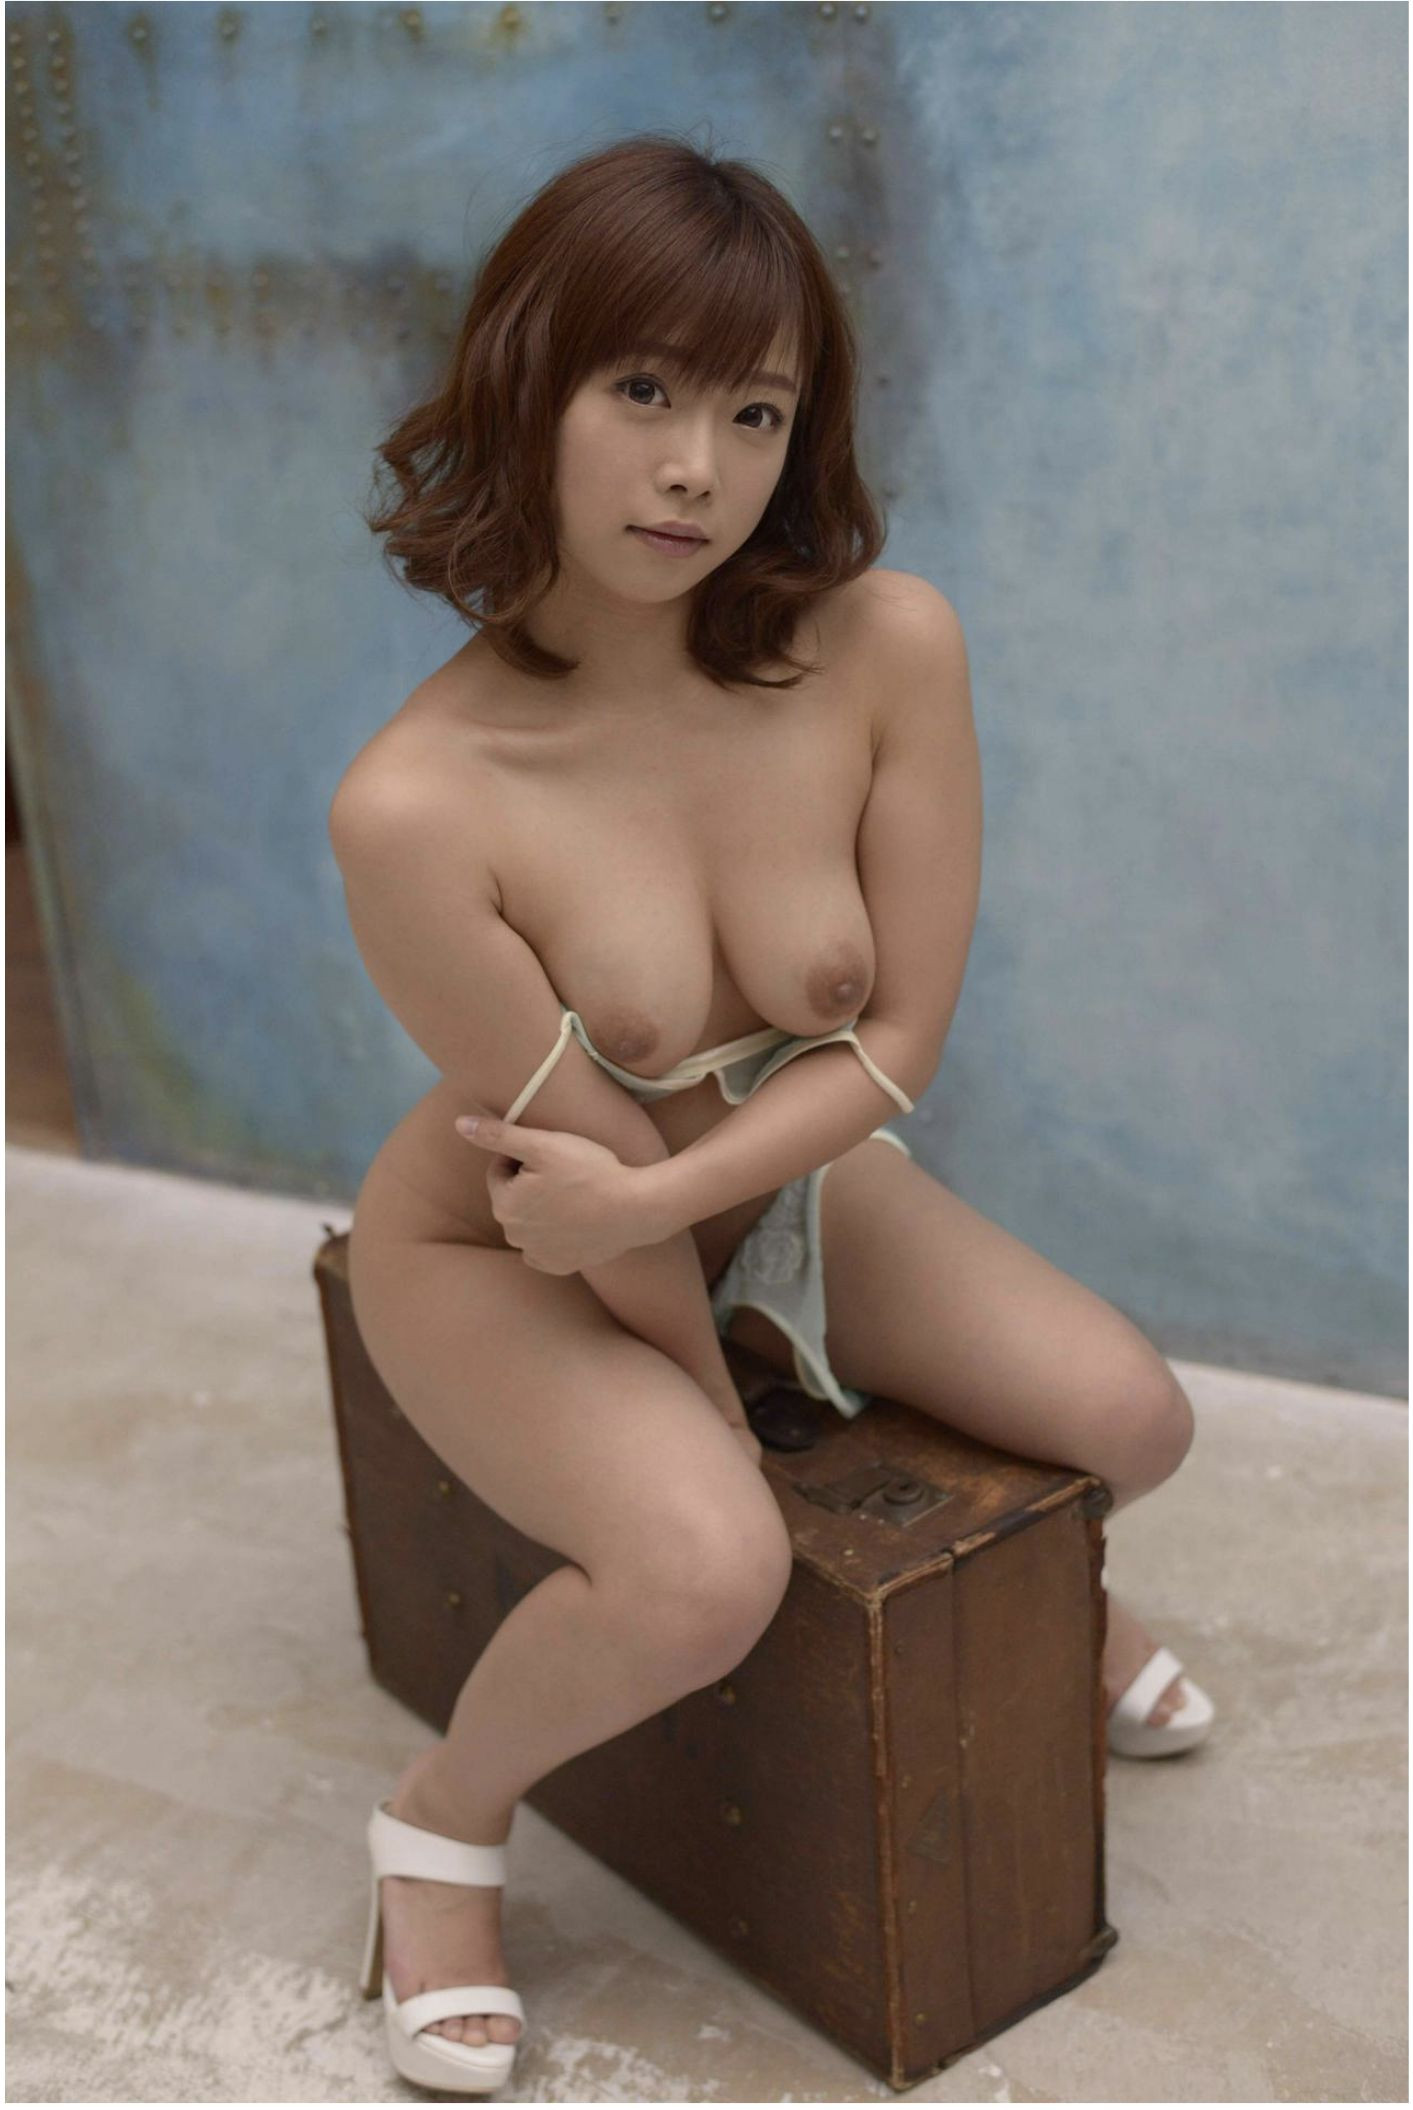 SOFT ON DEMAND GRAVURE COLLECTION 紗倉まな04 photo 102